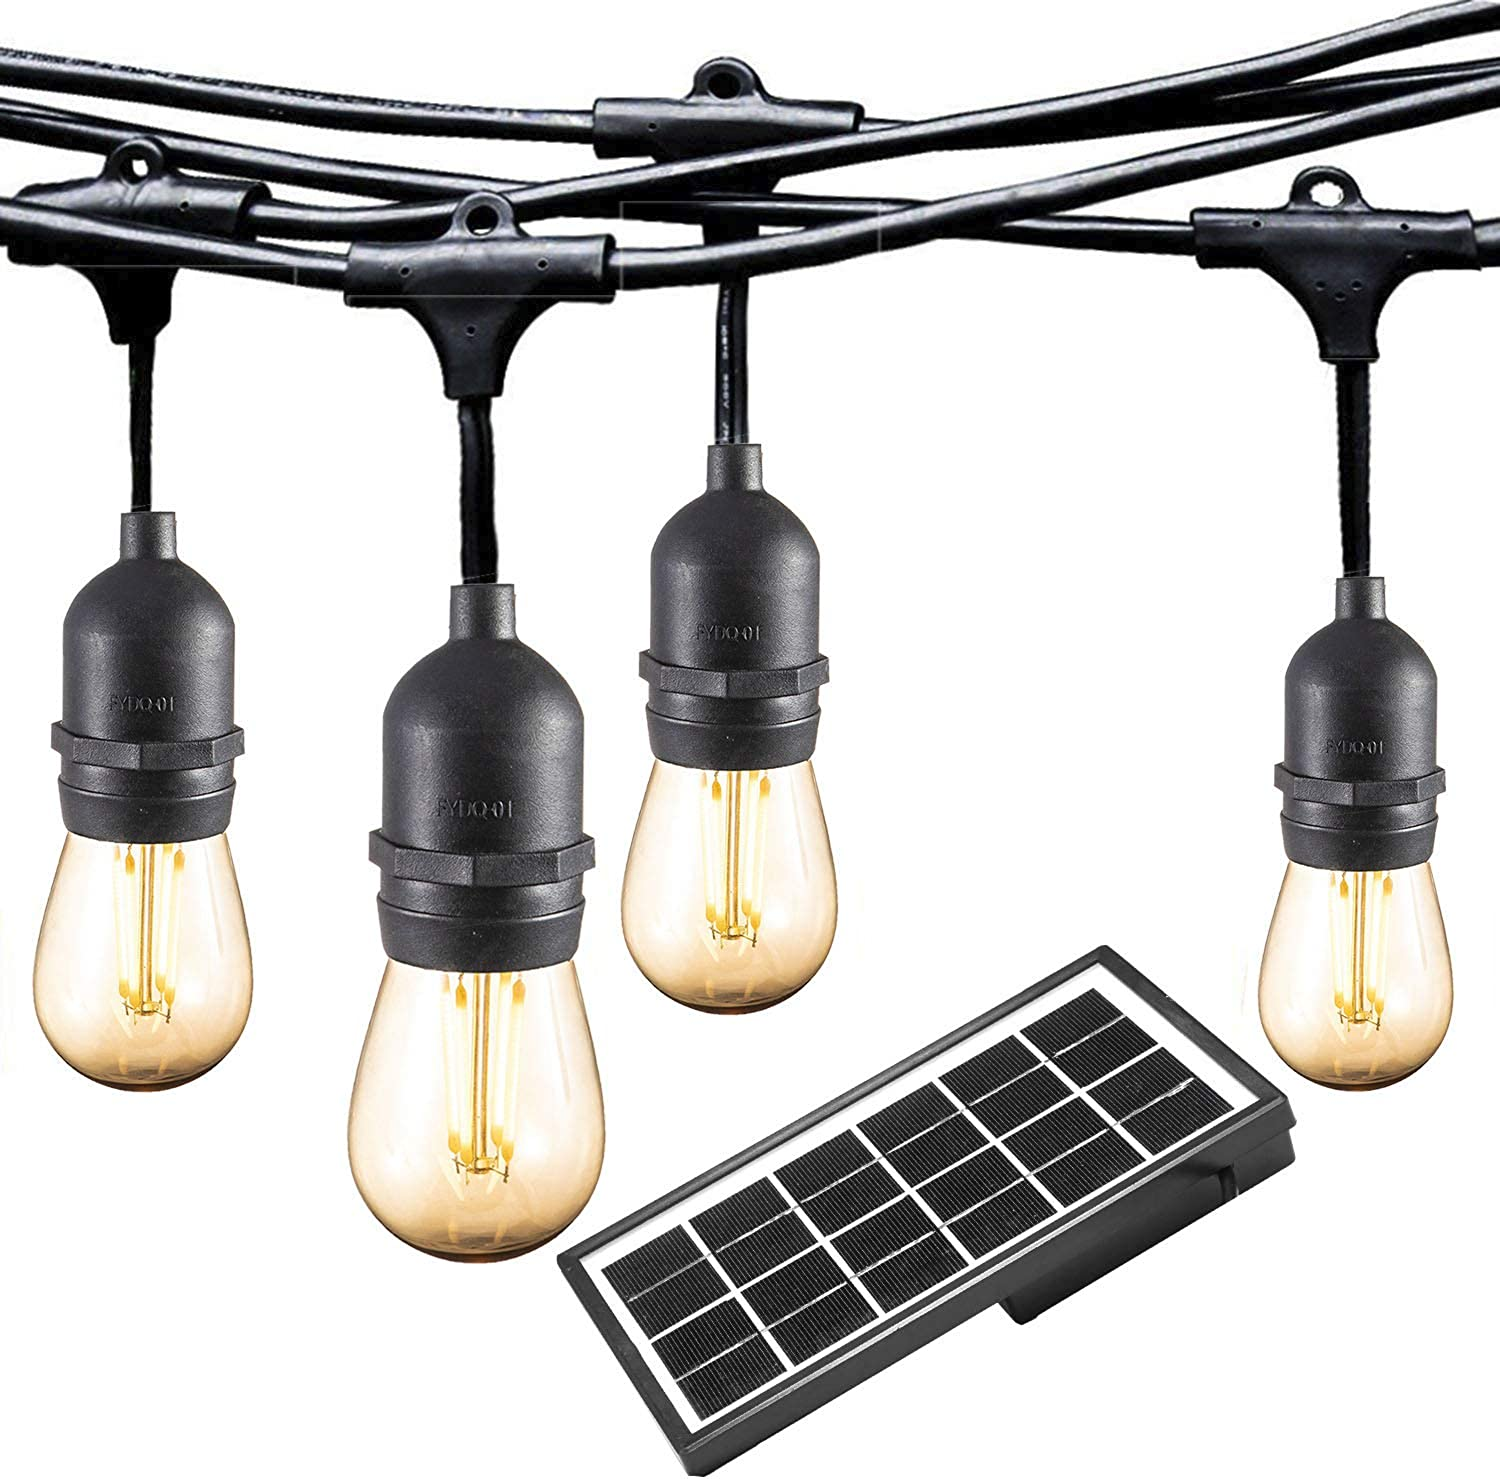 Ashialight Solar LED Outdoor String Lights with Hanging Sockets - Heavy Duty Lights,Waterproof,42Ft 10 Lights LED Bistro Cafe Lights,Low Voltage,Vintage Edison Bulbs,Commerial Patio String Lights